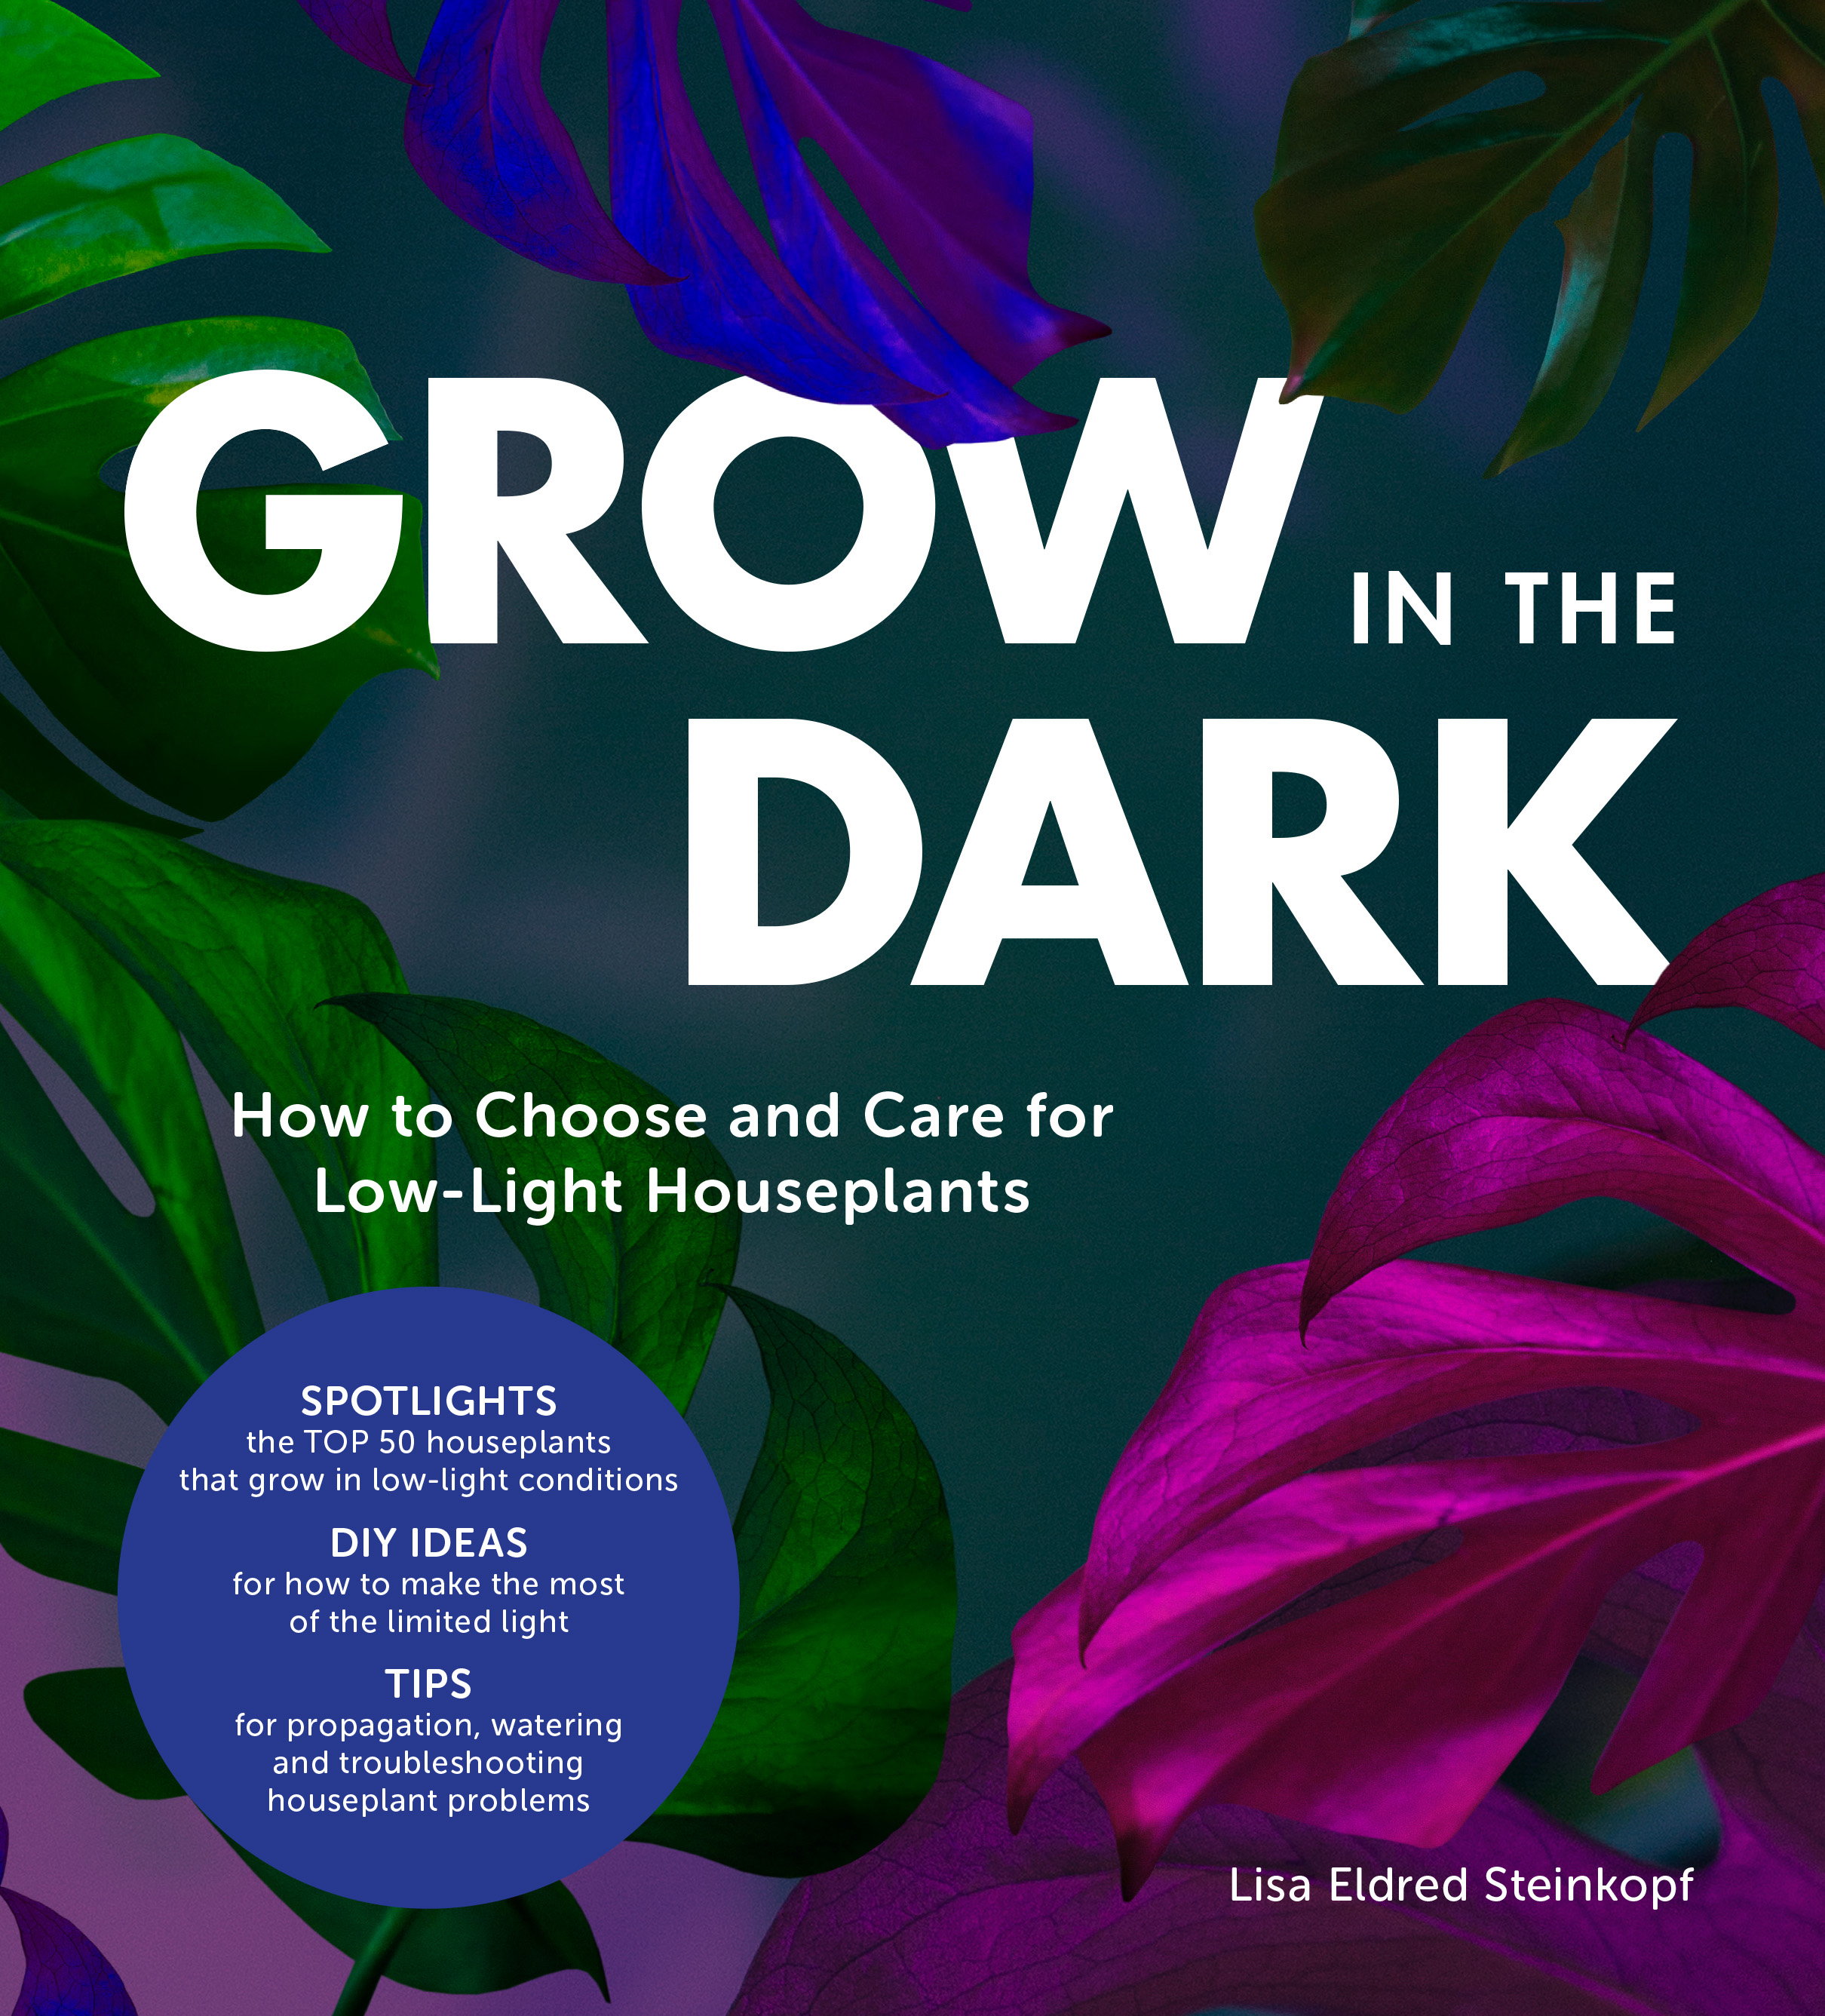 Grow In The Dark by Lisa Eldred Steinkopf is available now through Murdoch Books ($32.99) -